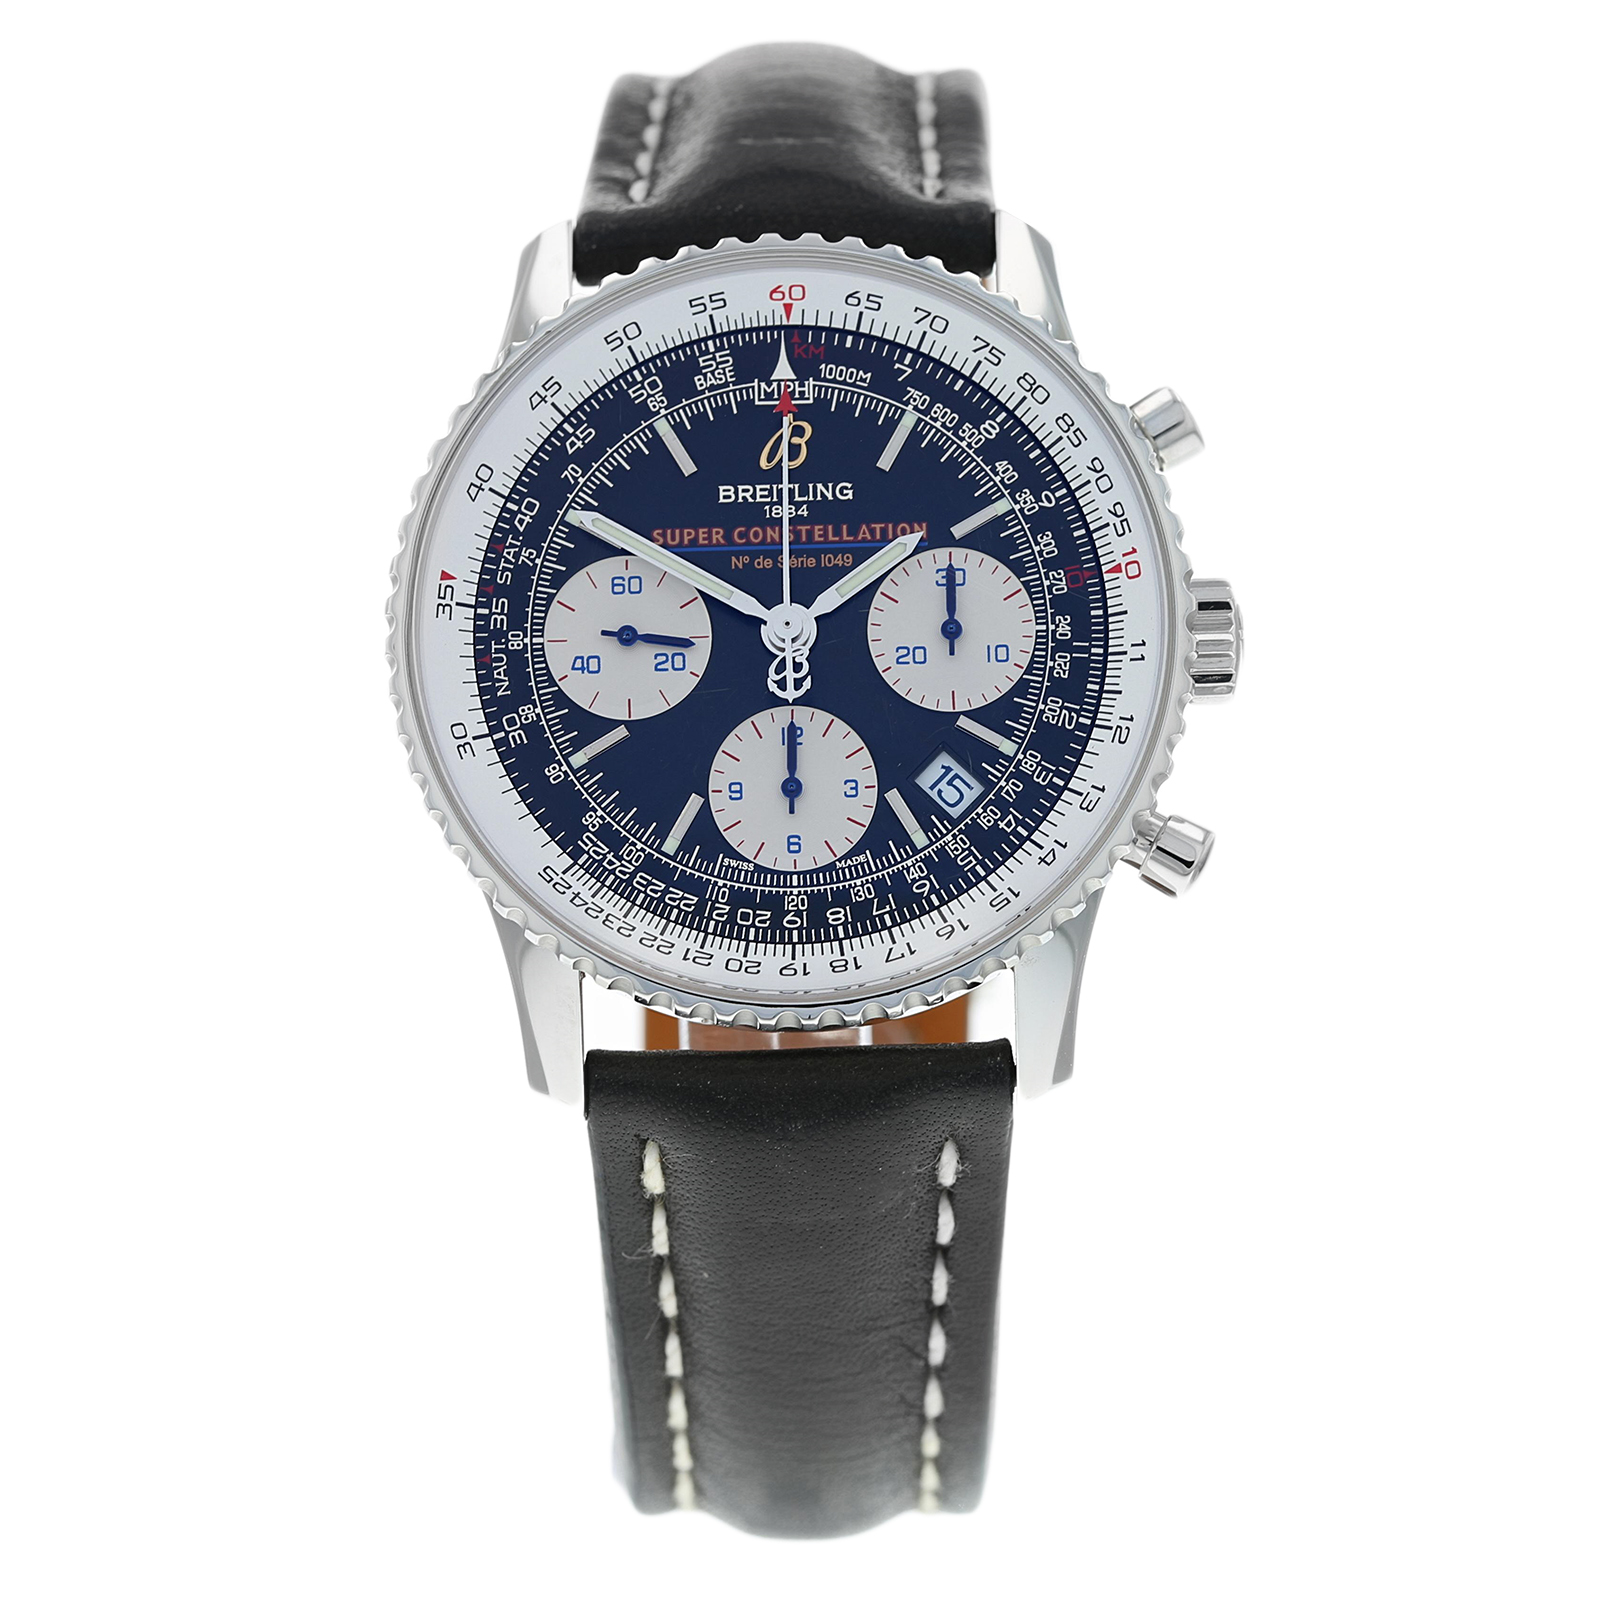 Pre-Owned Breitling Limited Edition Navitimer Super Const ...